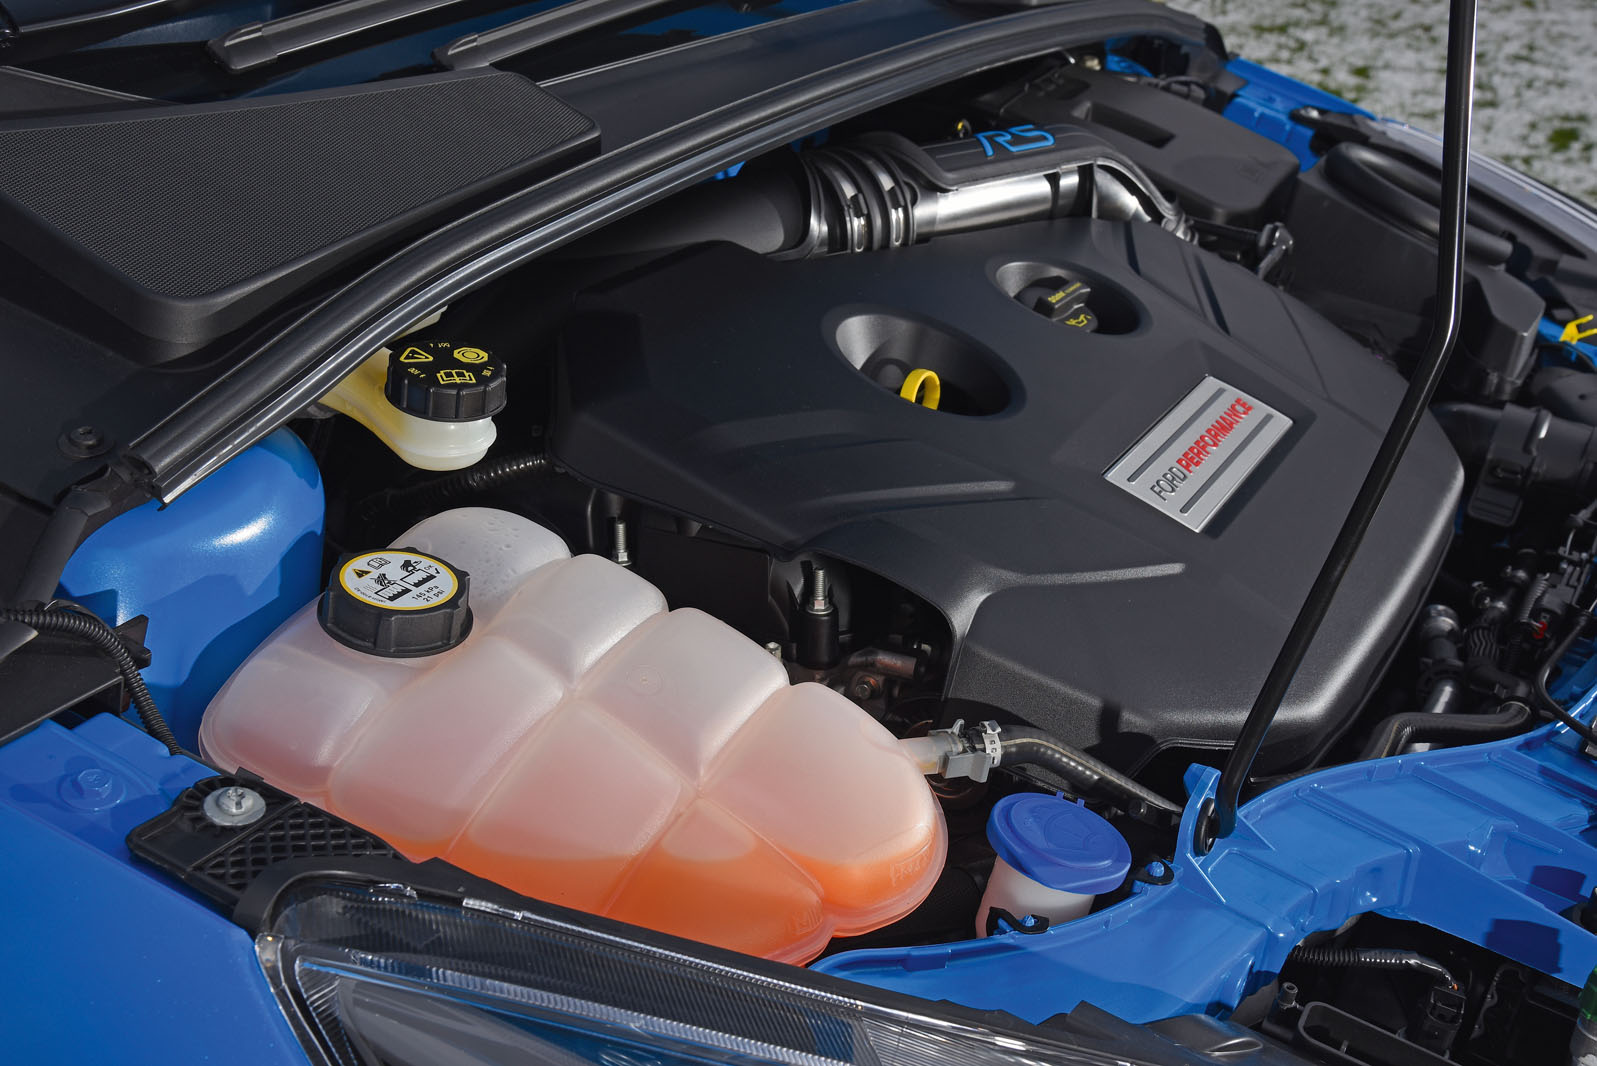 Analysis Ford Focus Rs Engine Problem Autocar Oldsmobile Coolant Although The Unit Is Built Alongside Mustangs Four Pot Motor At Fords Valencia Plant In Spain 345bhp Powerplant Uses An Aluminium Head